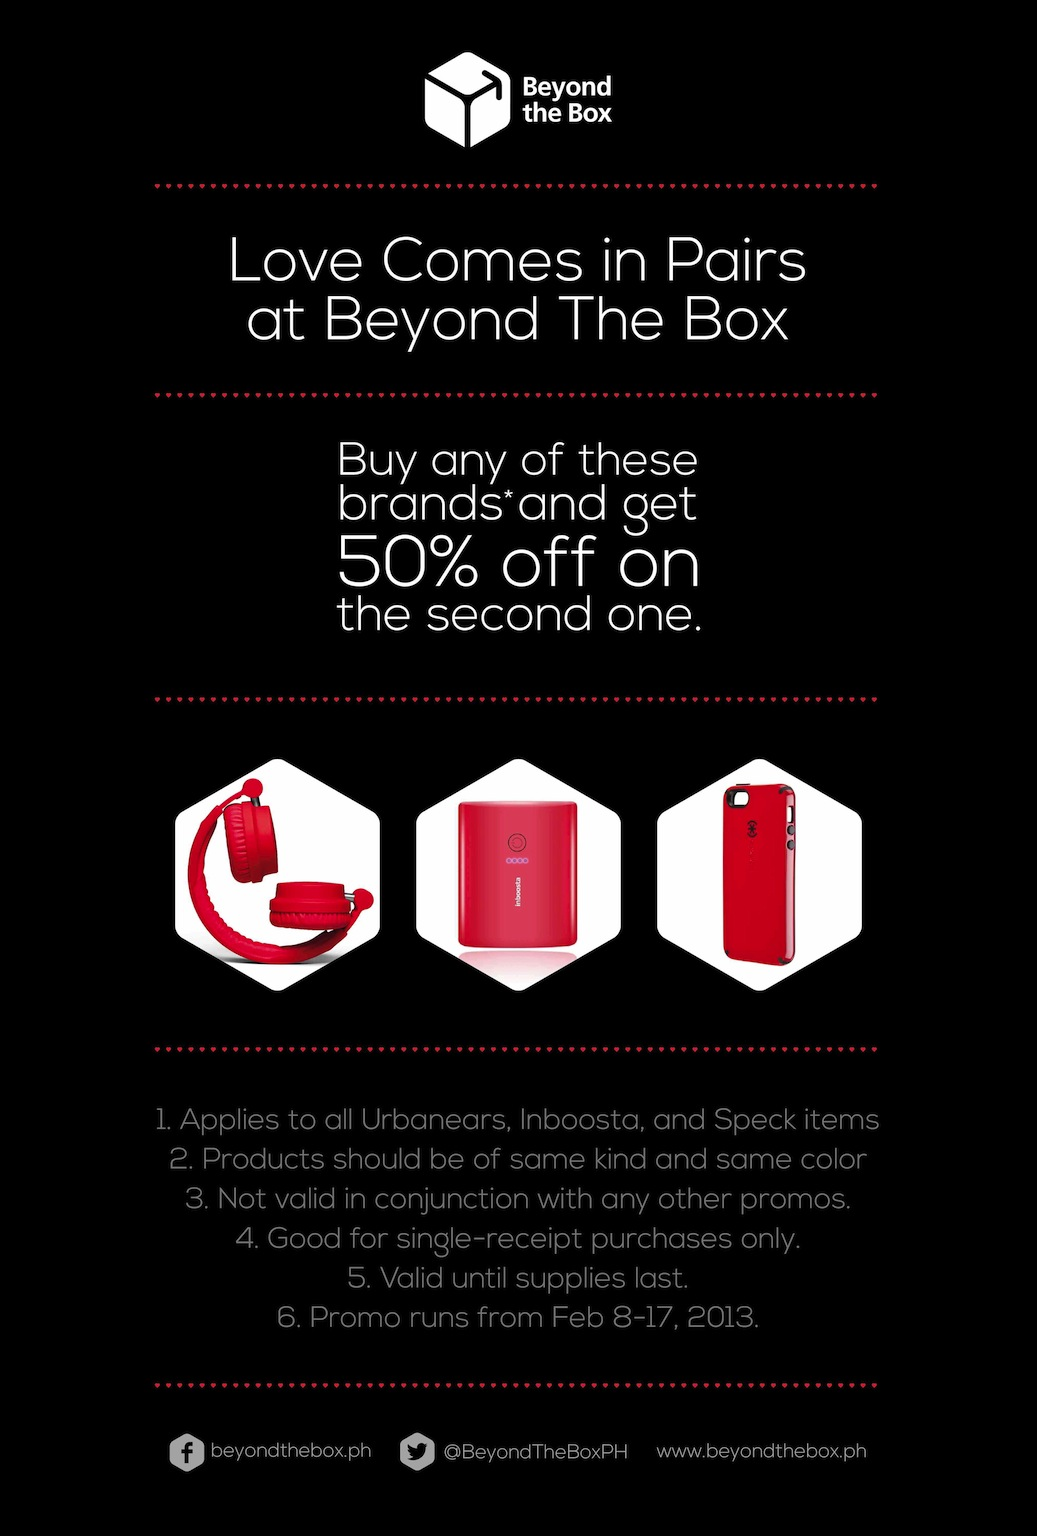 beyond the box sale promo valentines day